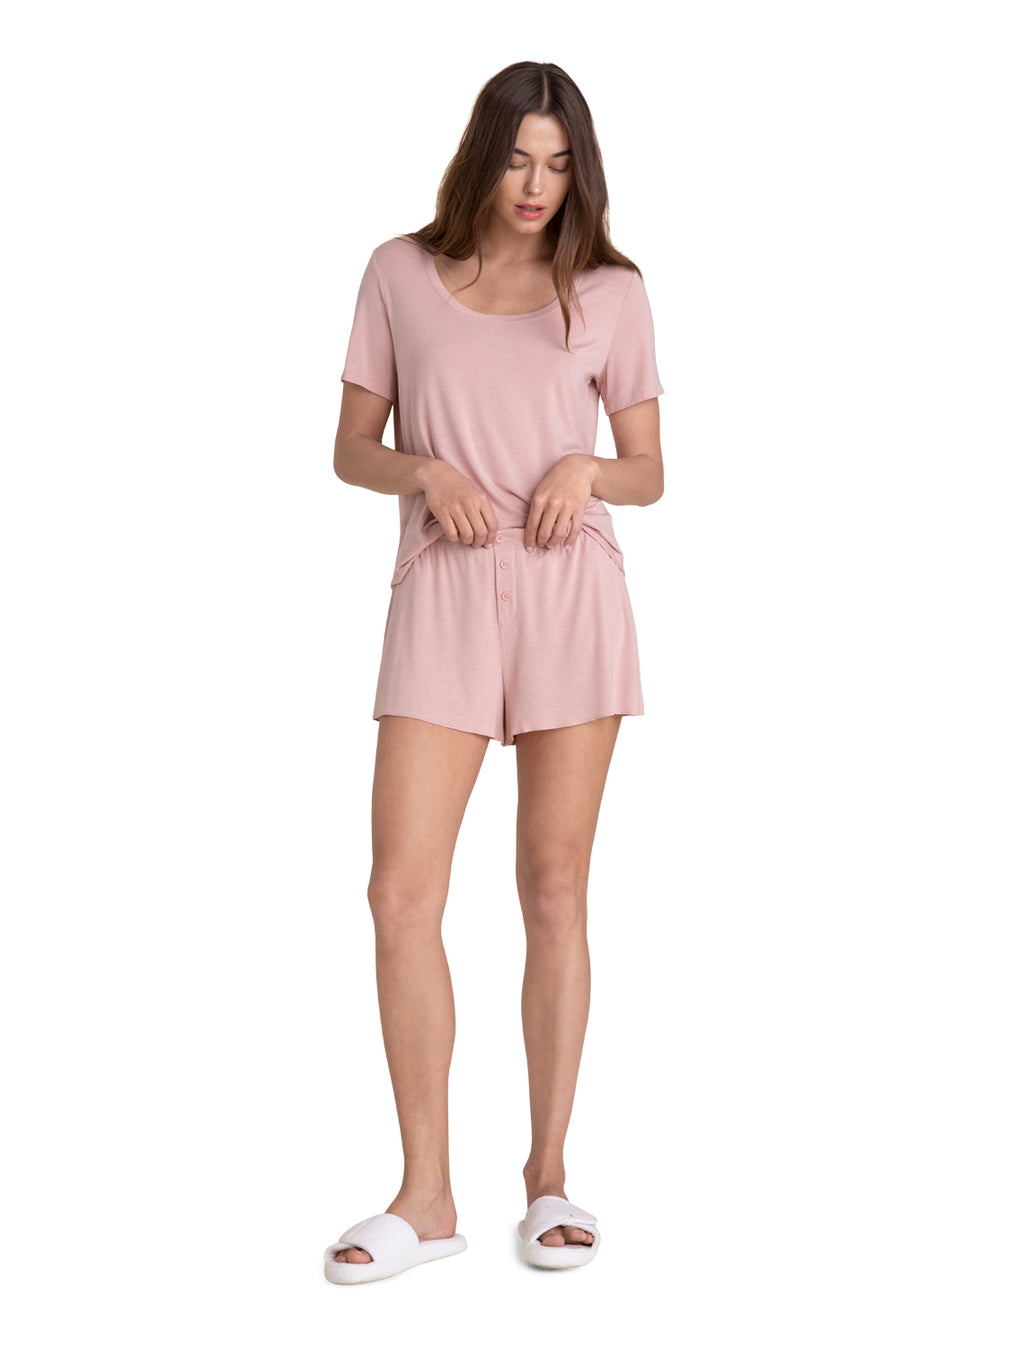 Barefoot Dreams Scoop Neck Short Set - Rose